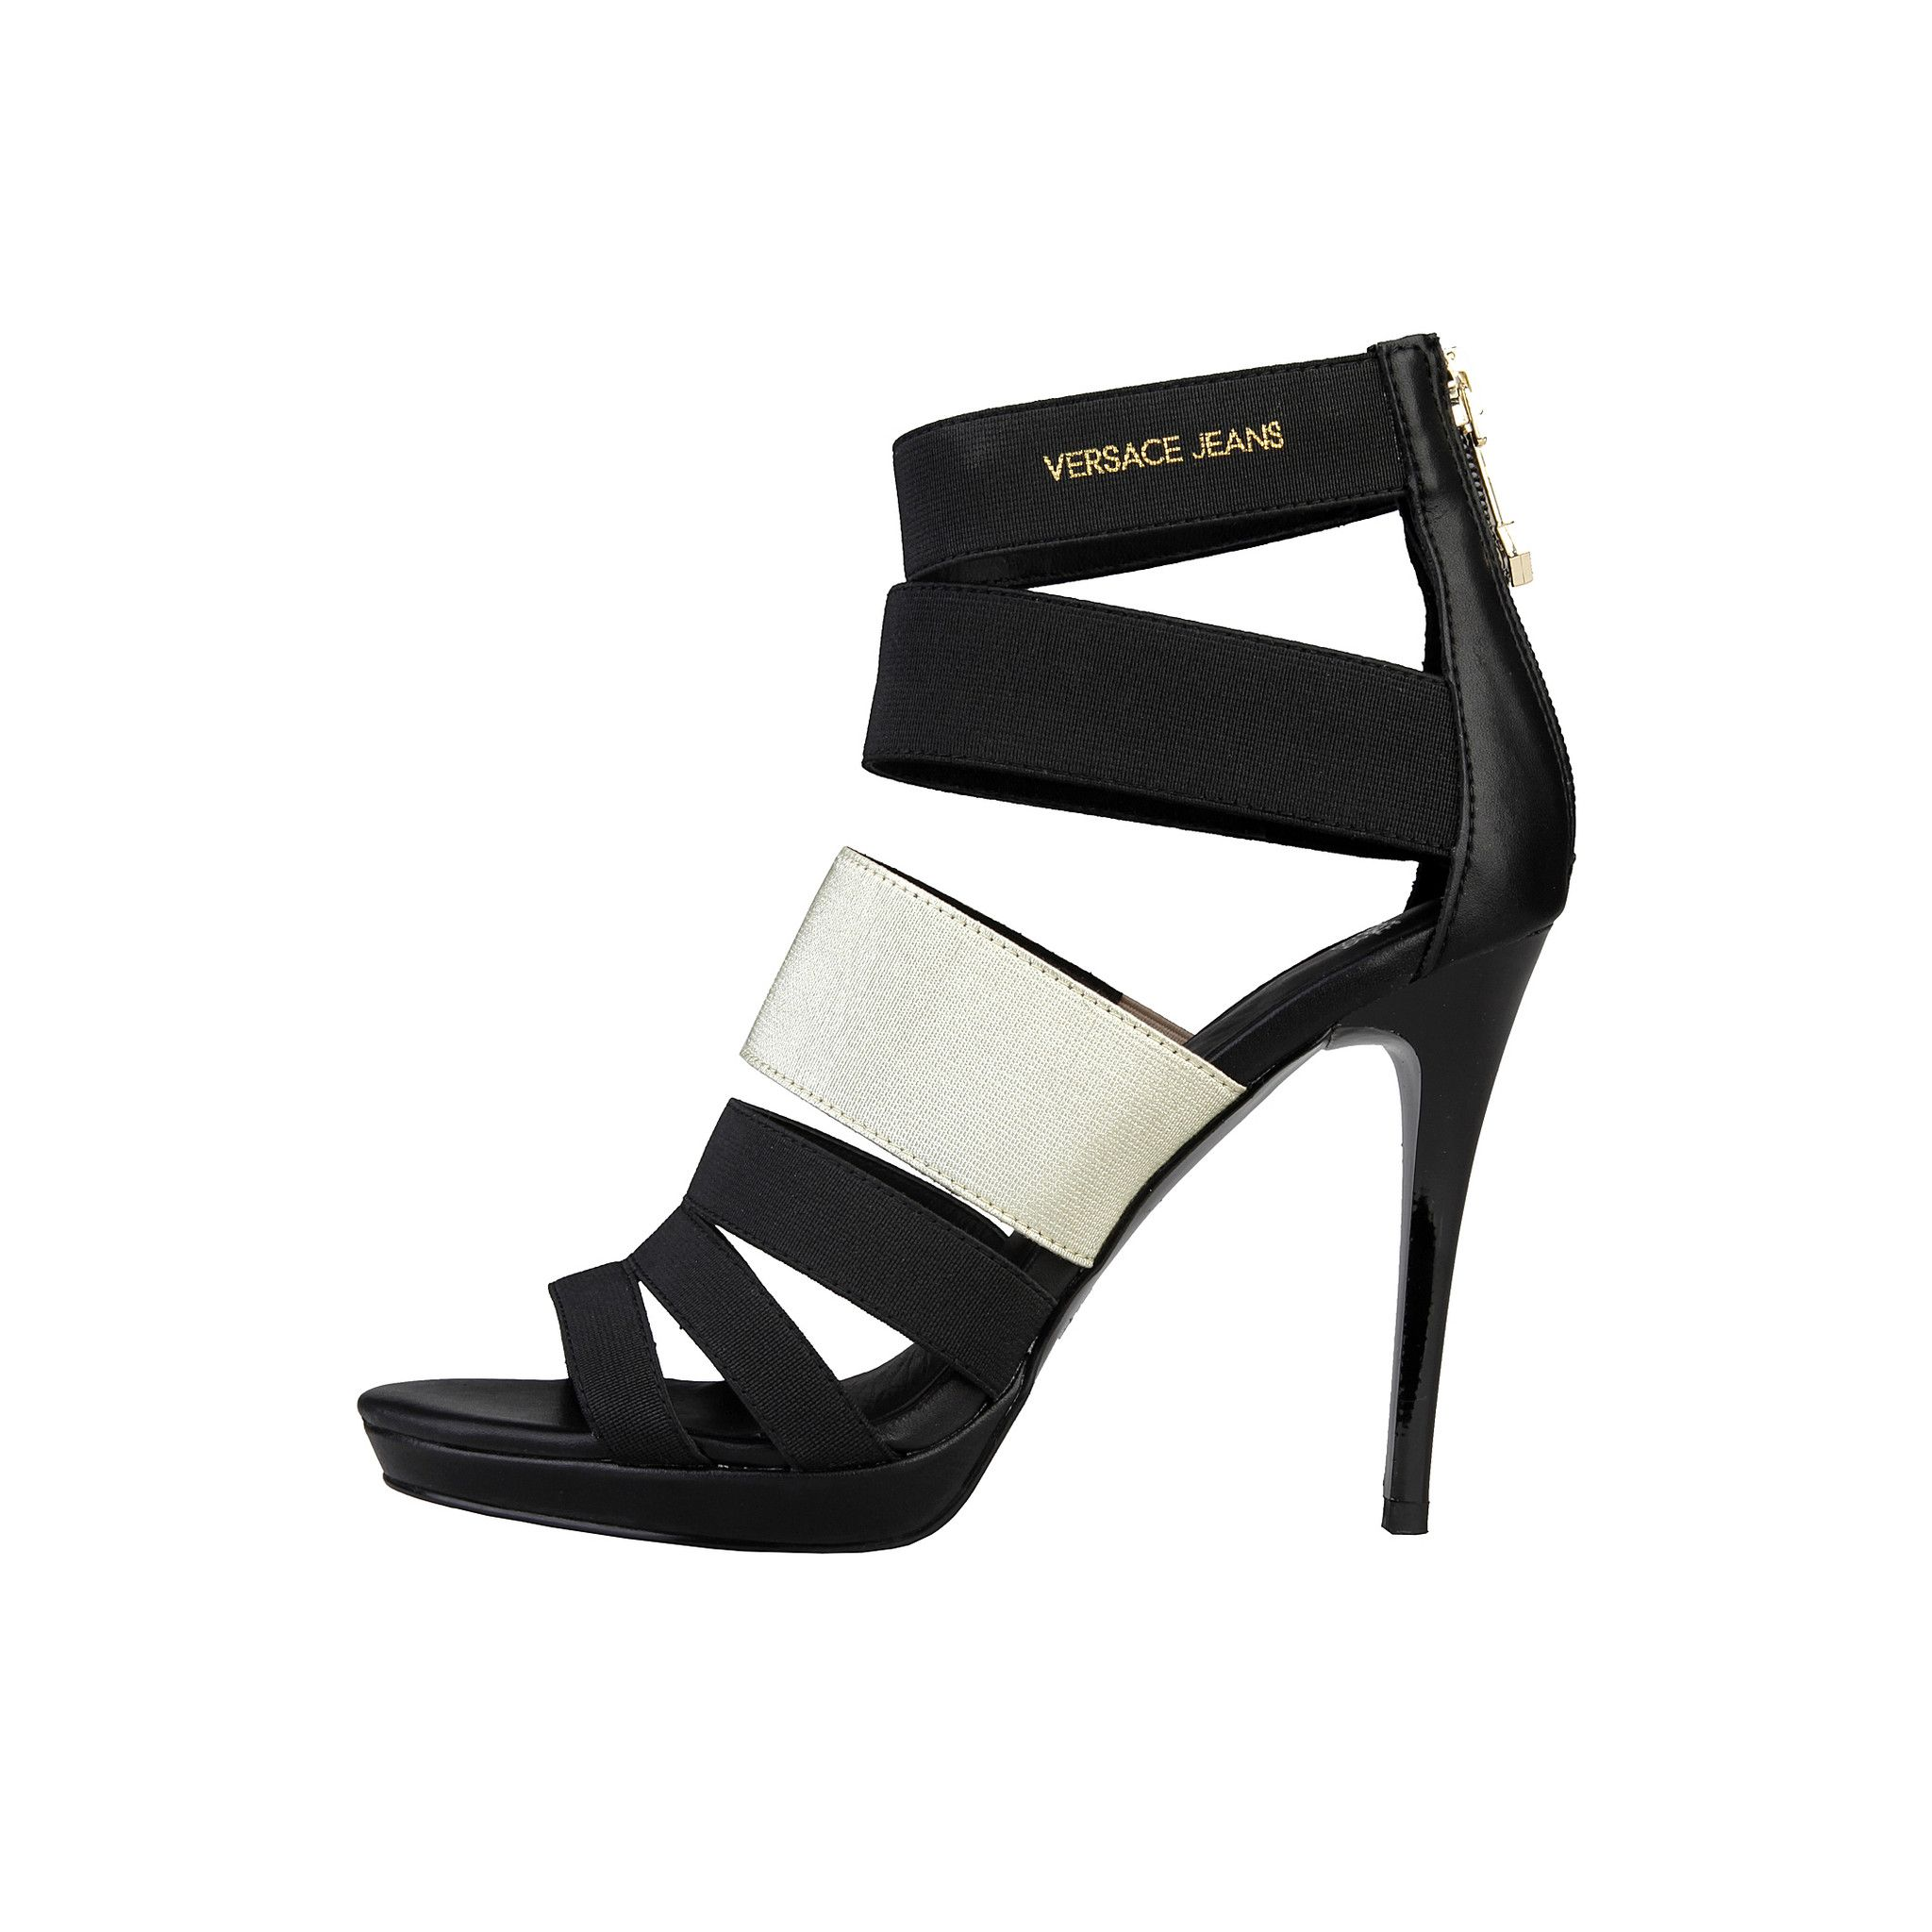 Versace Jeans sandals On Sale € 136.14 #Verace #Women